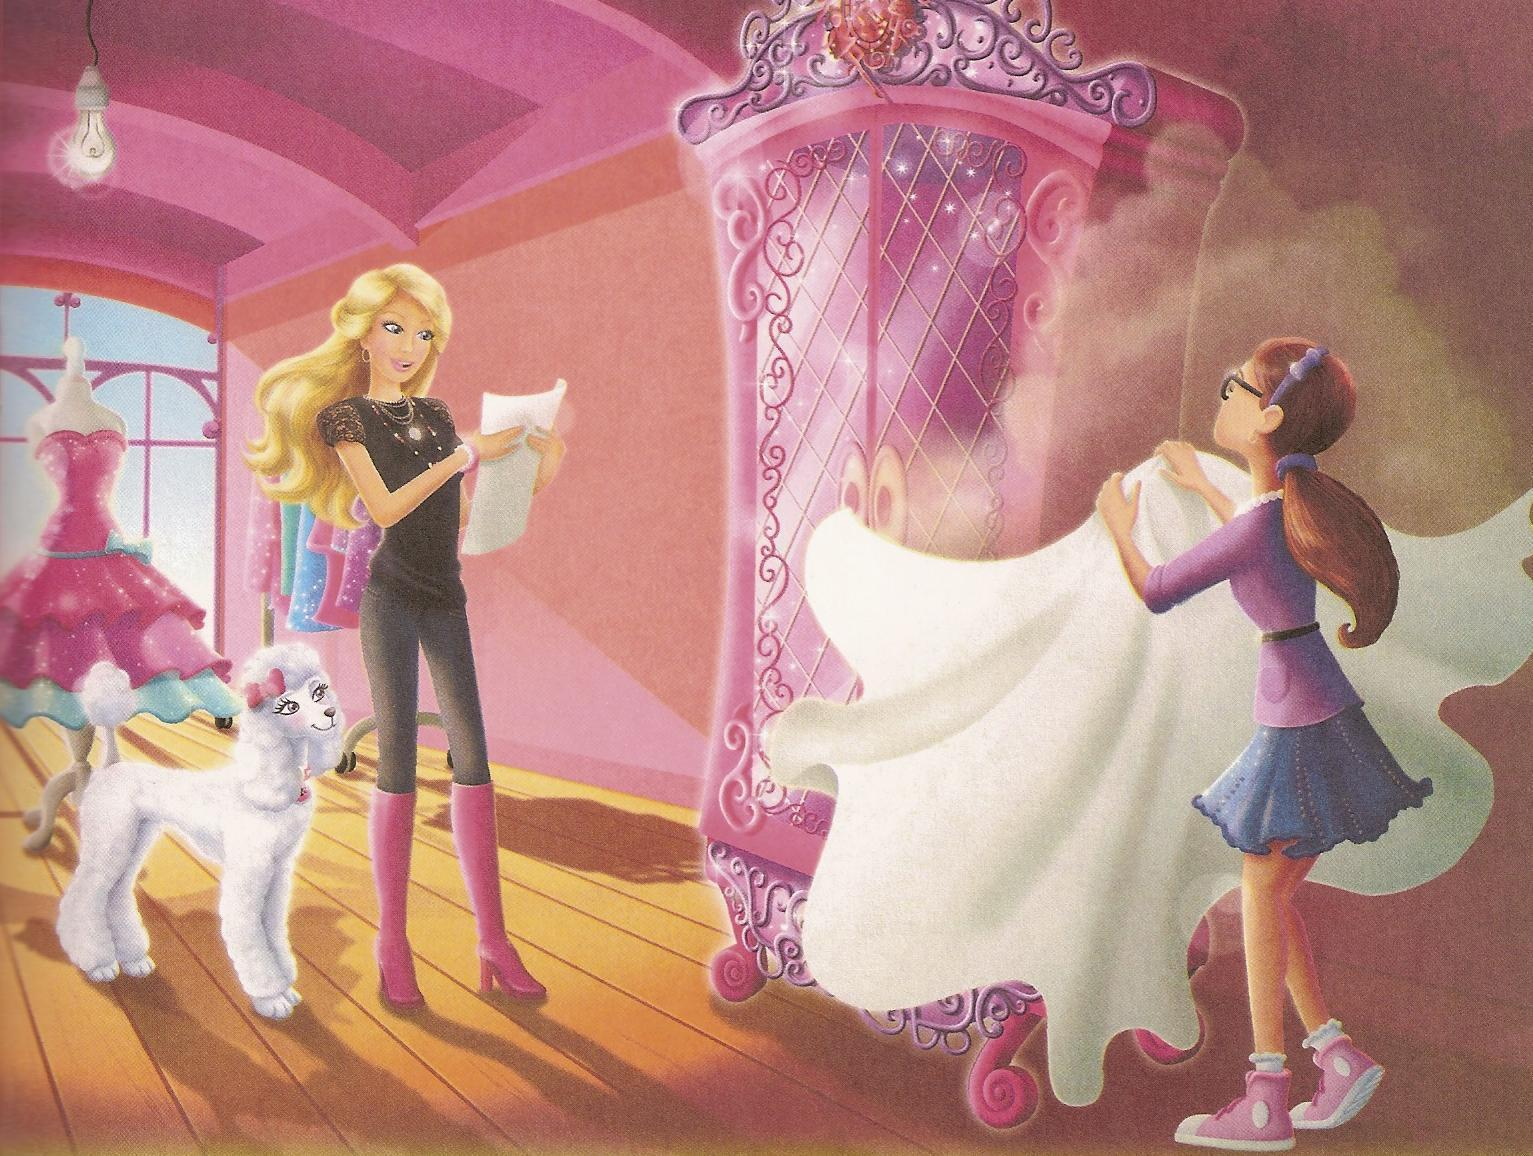 Barbie Fashion Fairytale Full Movie Barbie a Fashion Fairy Tale